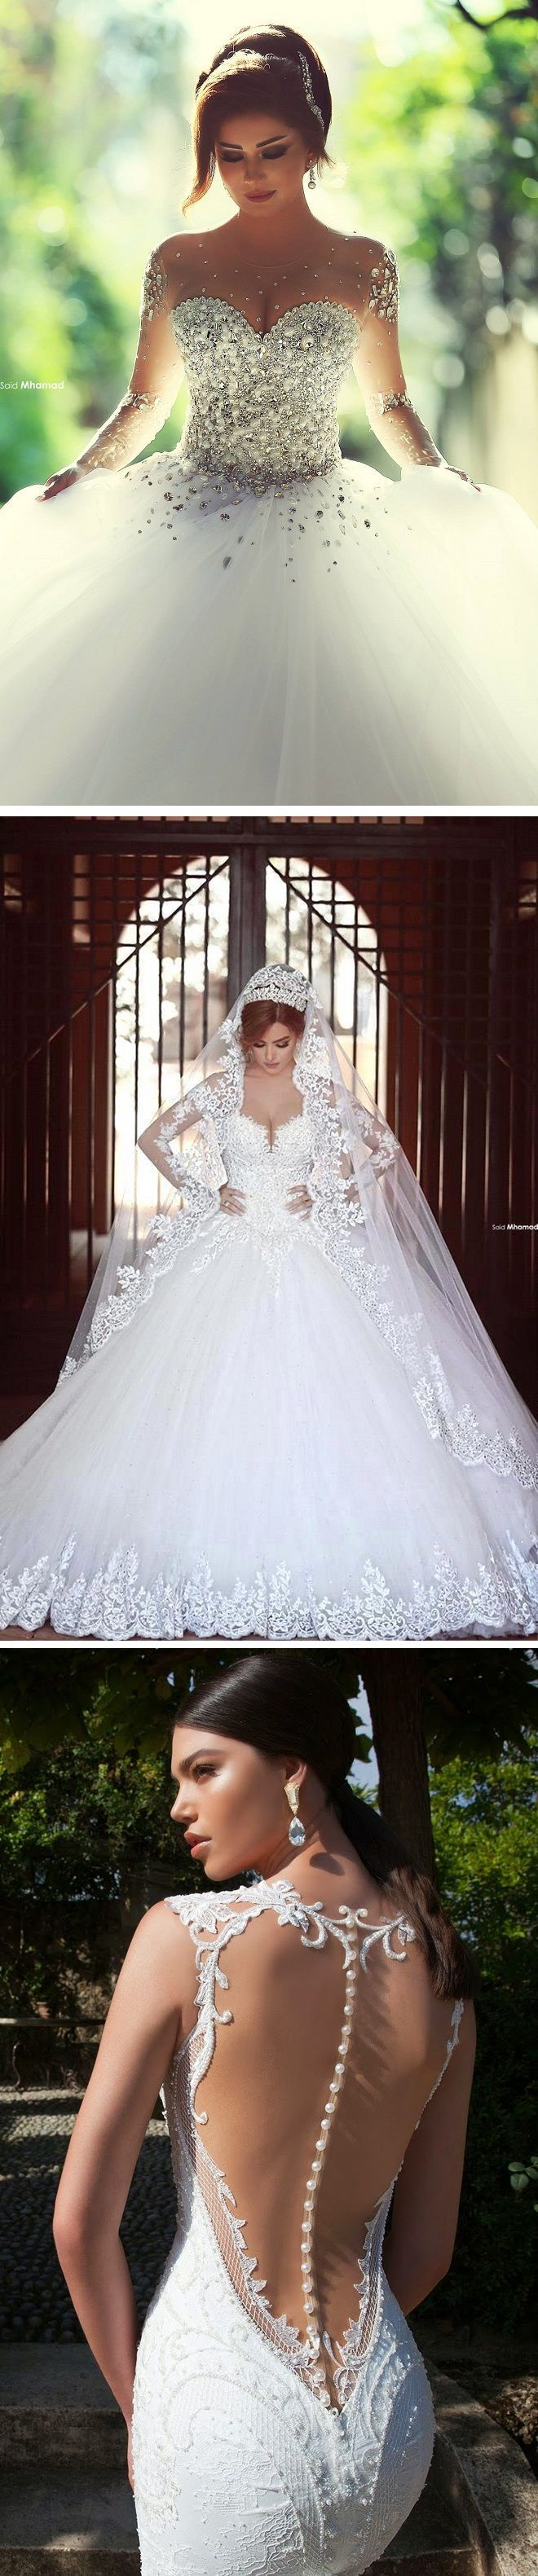 10 Jaw-Droppingly Beautiful Wedding Dresses To Obsess Over! #weddings: